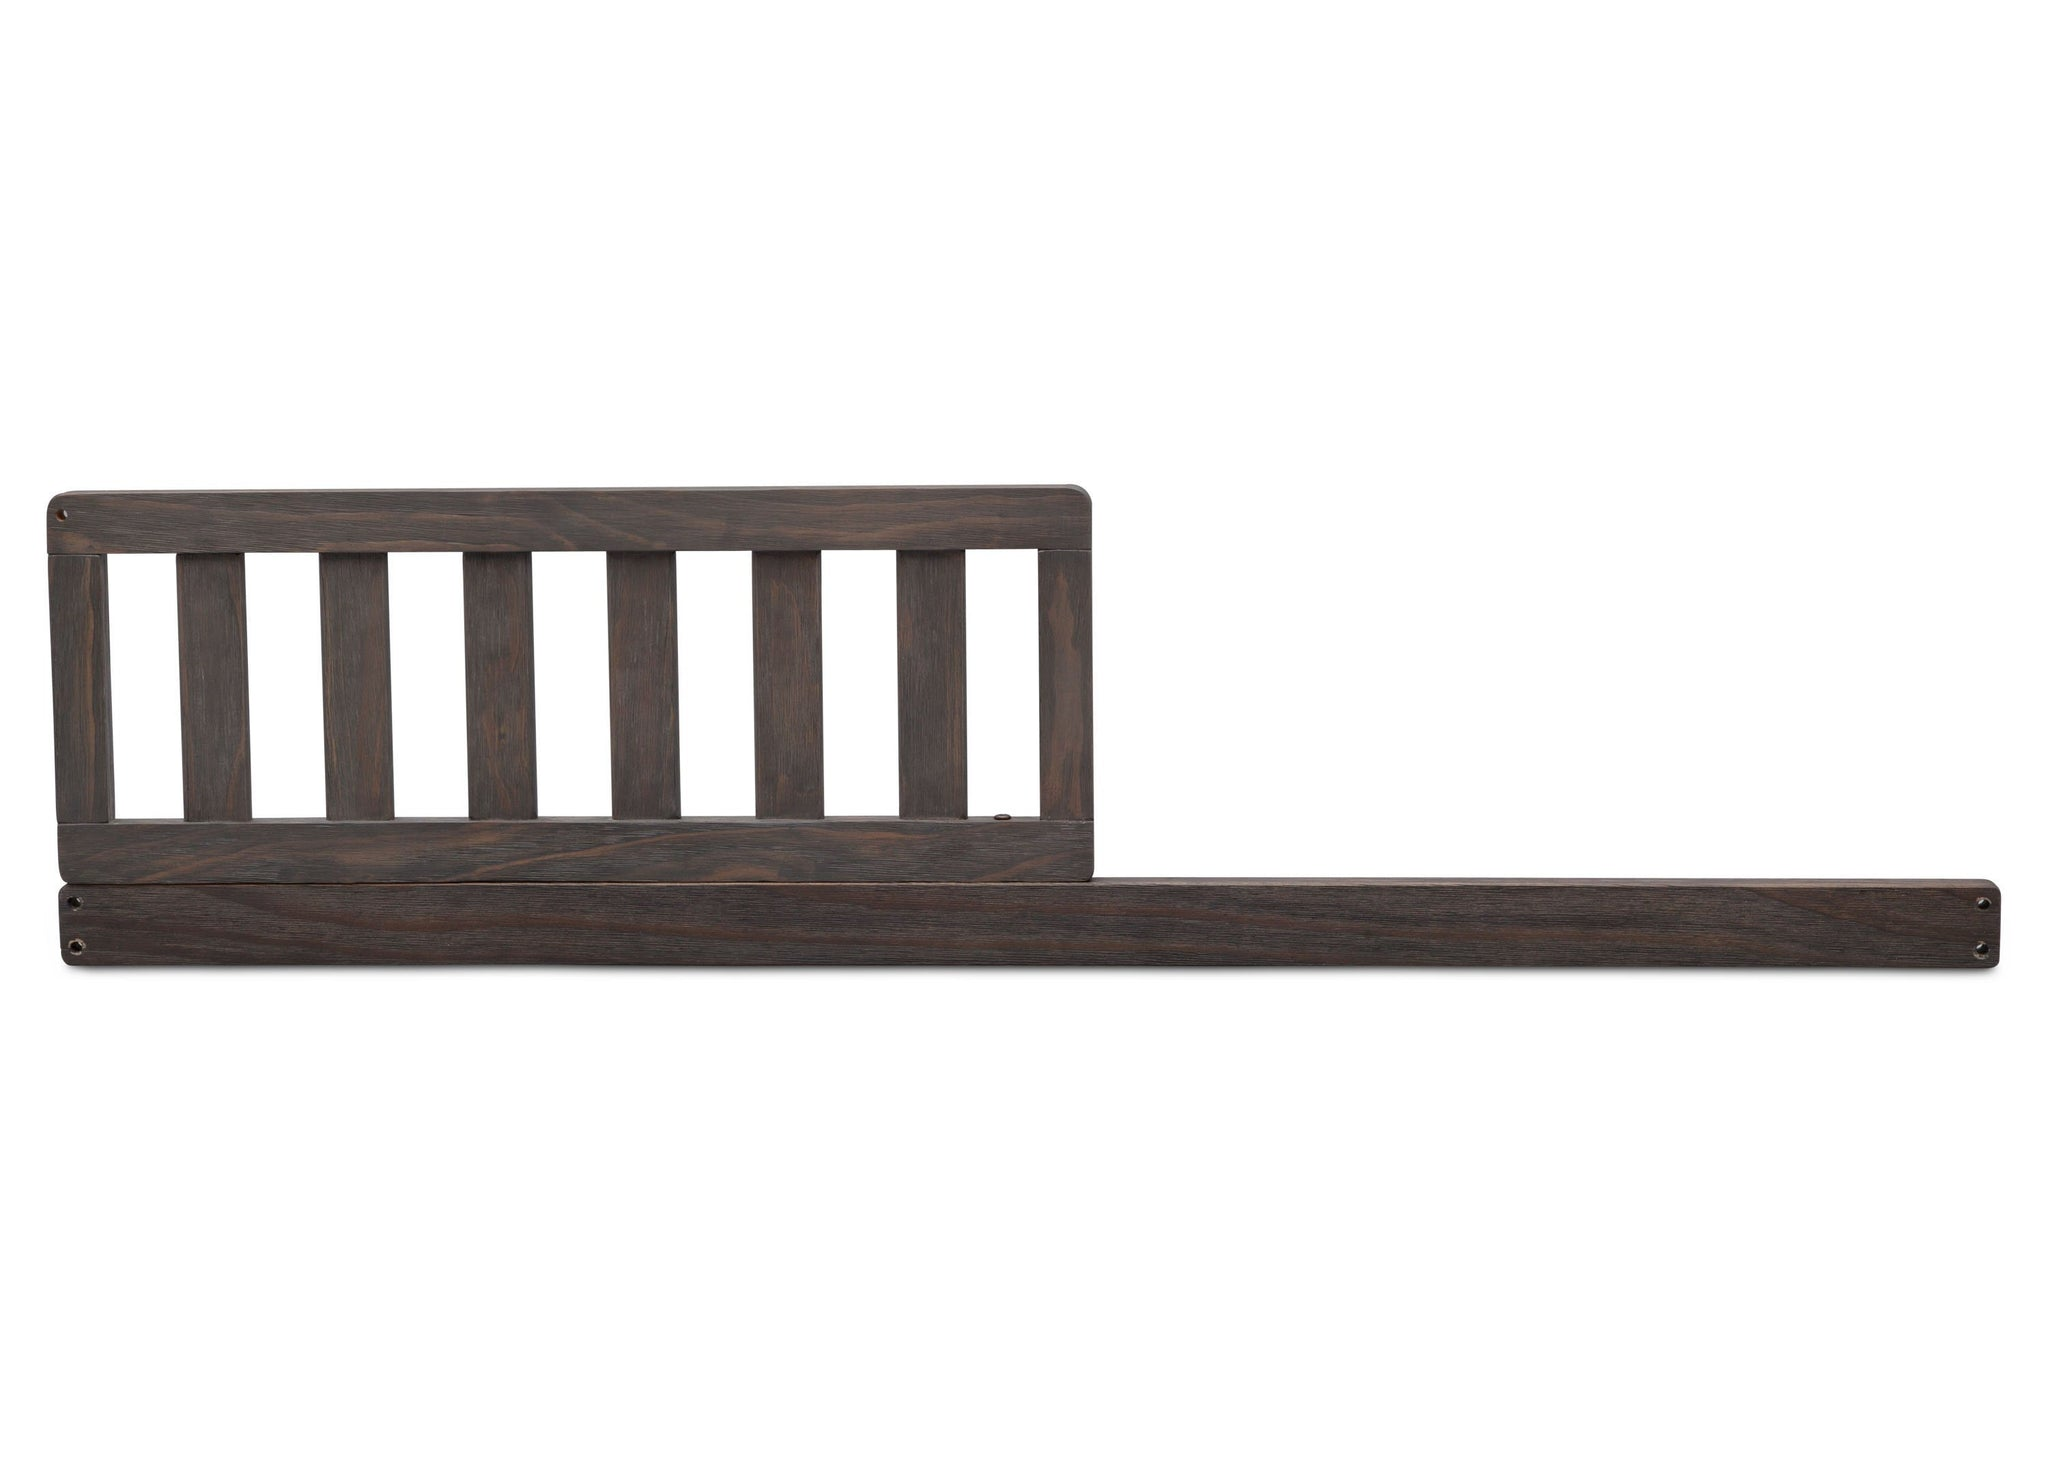 Serta Daybed/Toddler Guardrail Kit (703725) Rustic Grey (084ST) Front View a0a